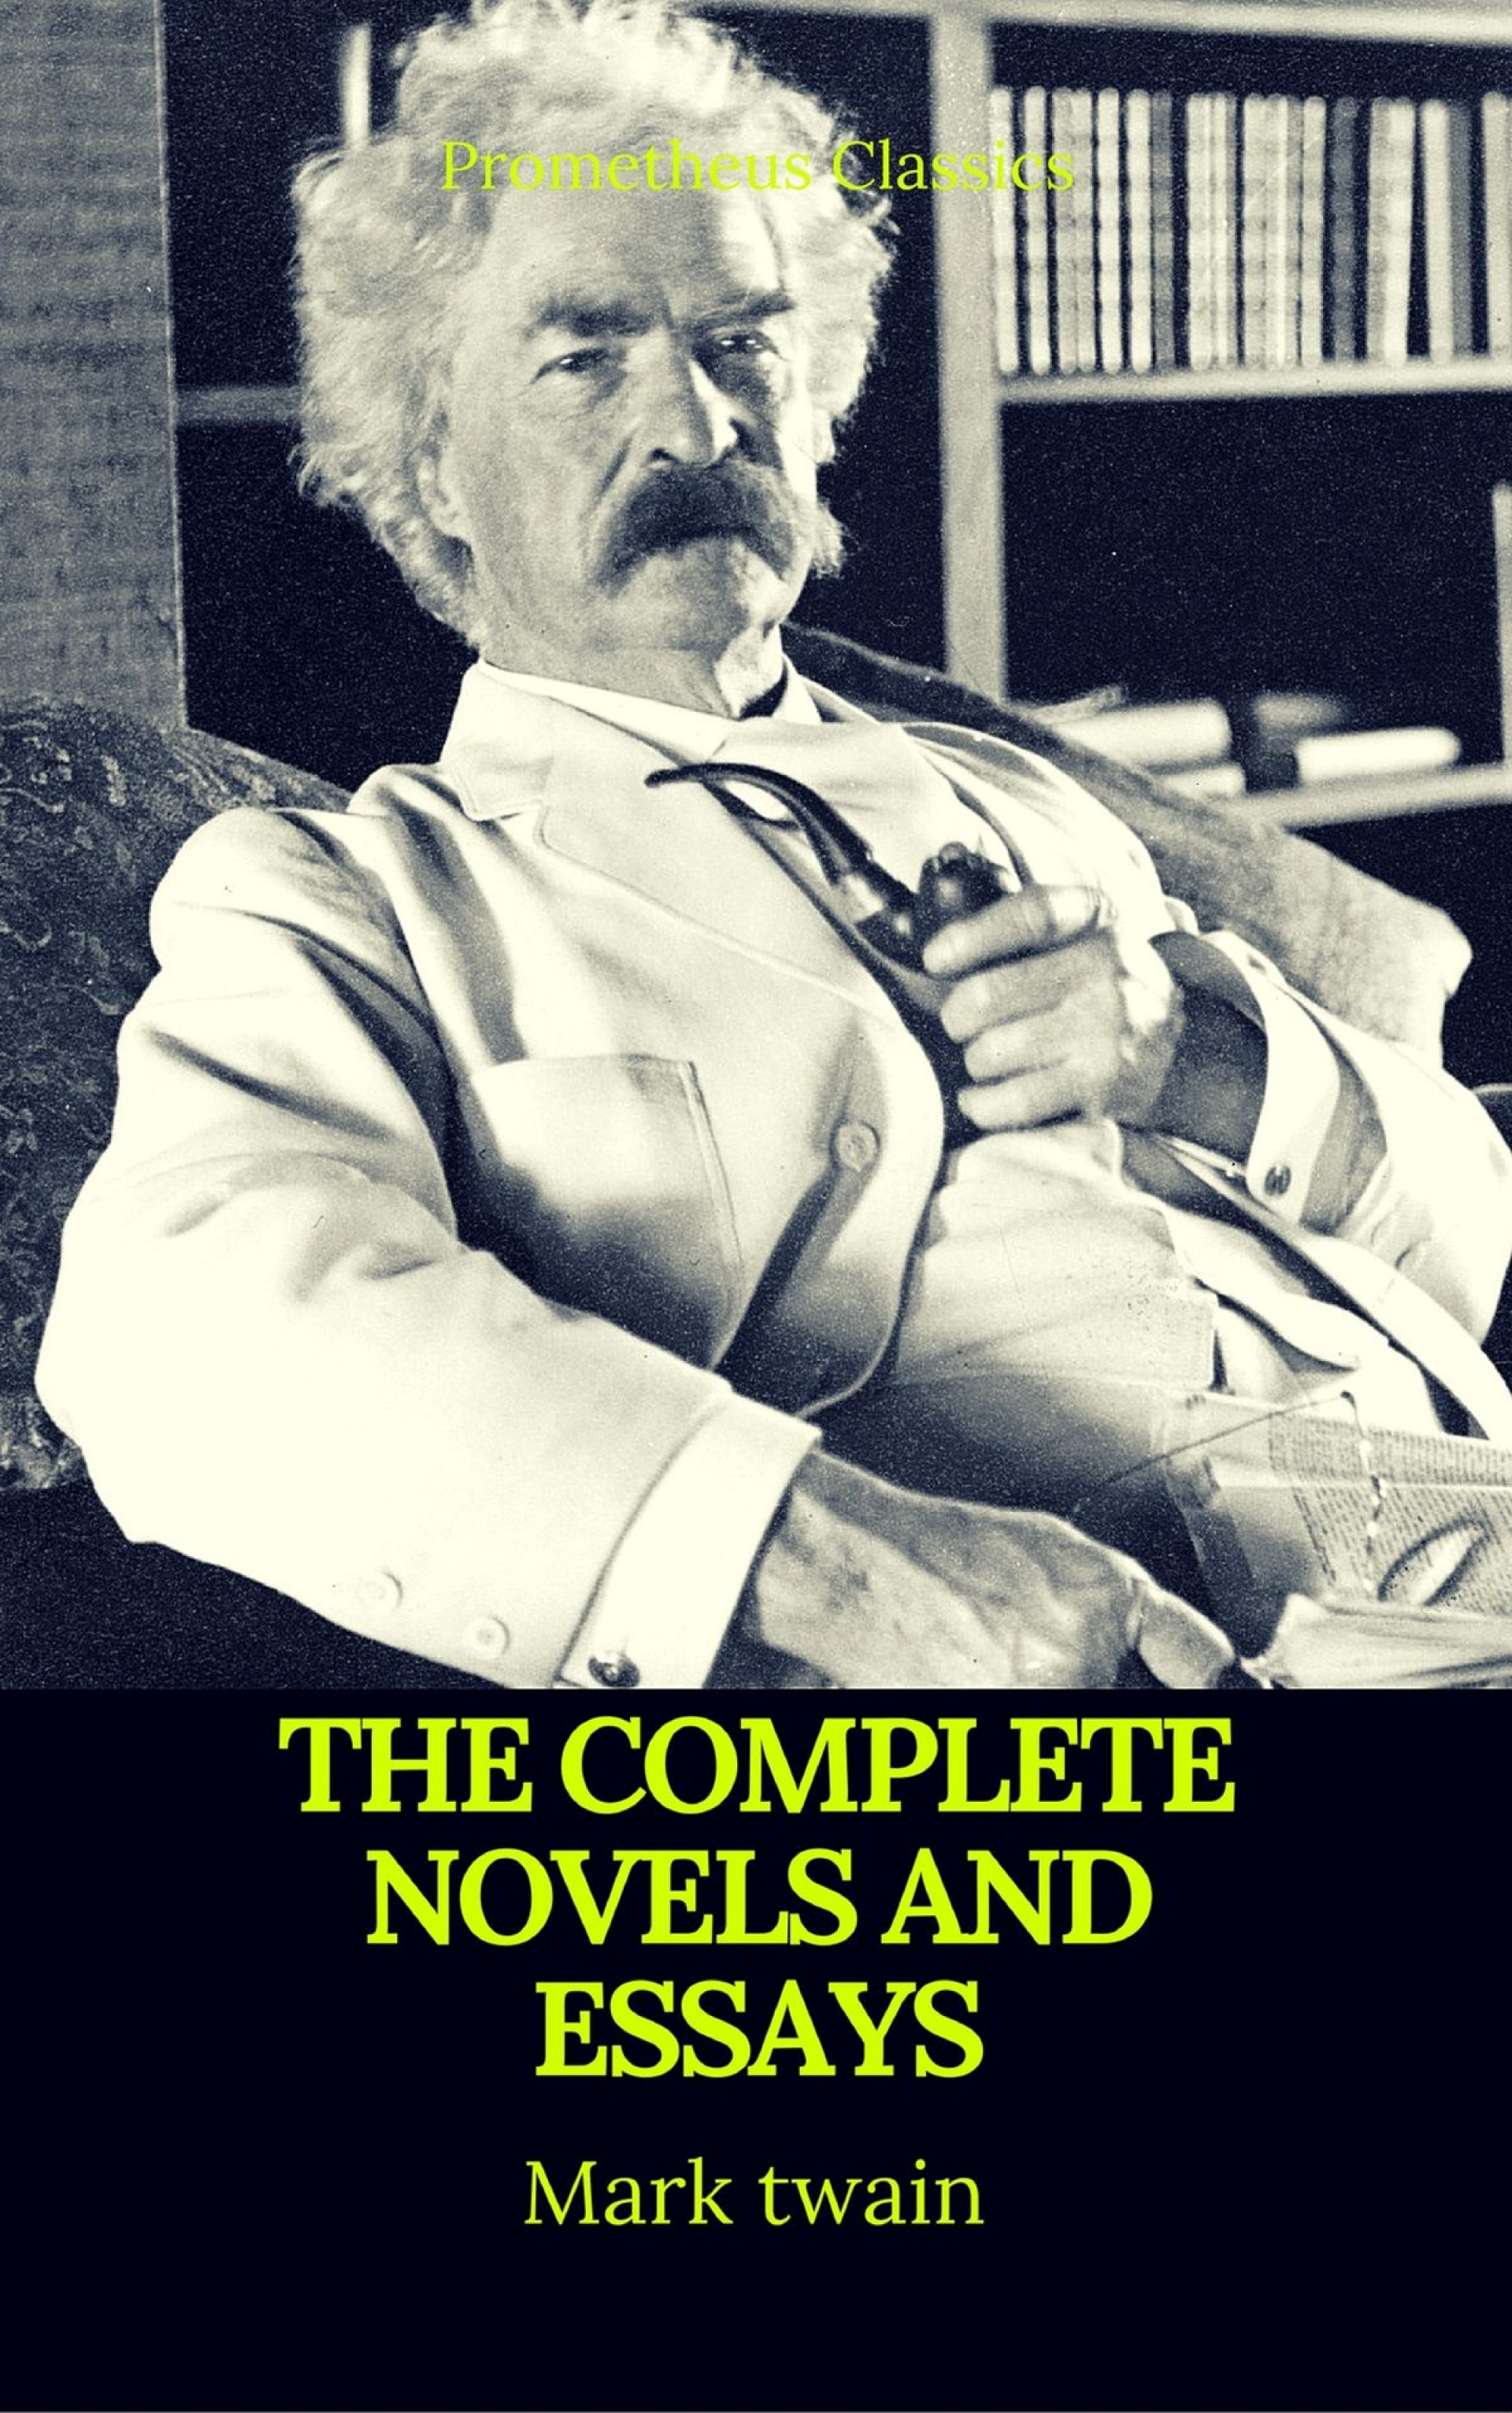 017 Mark Twain Essays The Complete Novels And Best Navigation Active Toc Prometheus Classics Essay Surprising Collected Tales Sketches Speeches On Writing Post Civil War 1920